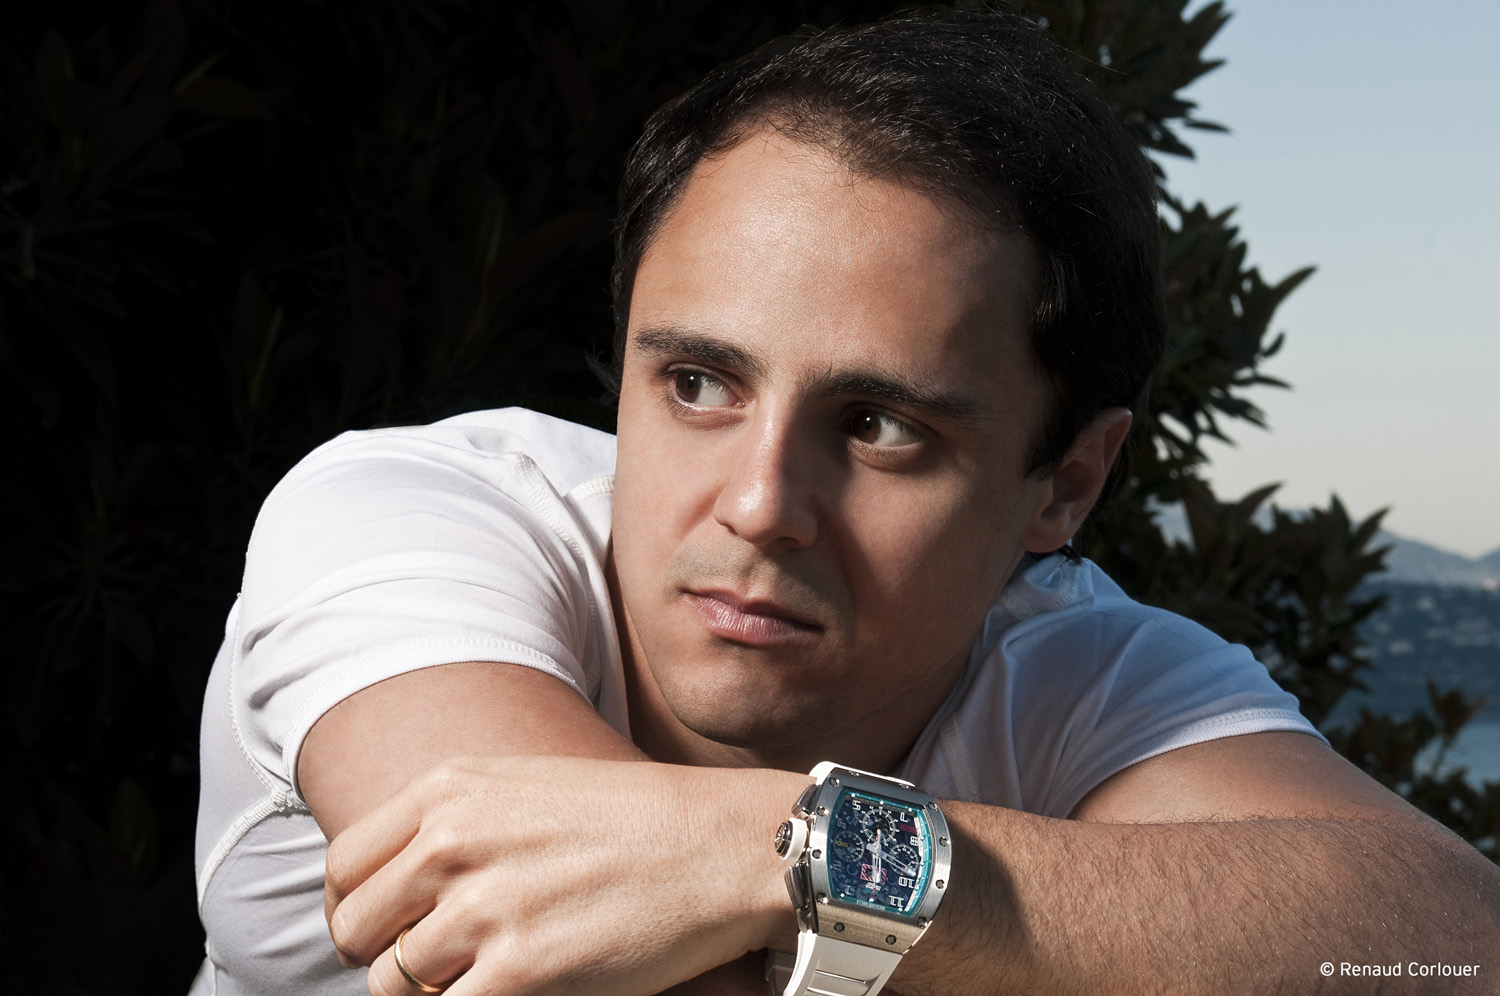 Felipe Massa wearing Richard Mille RM011